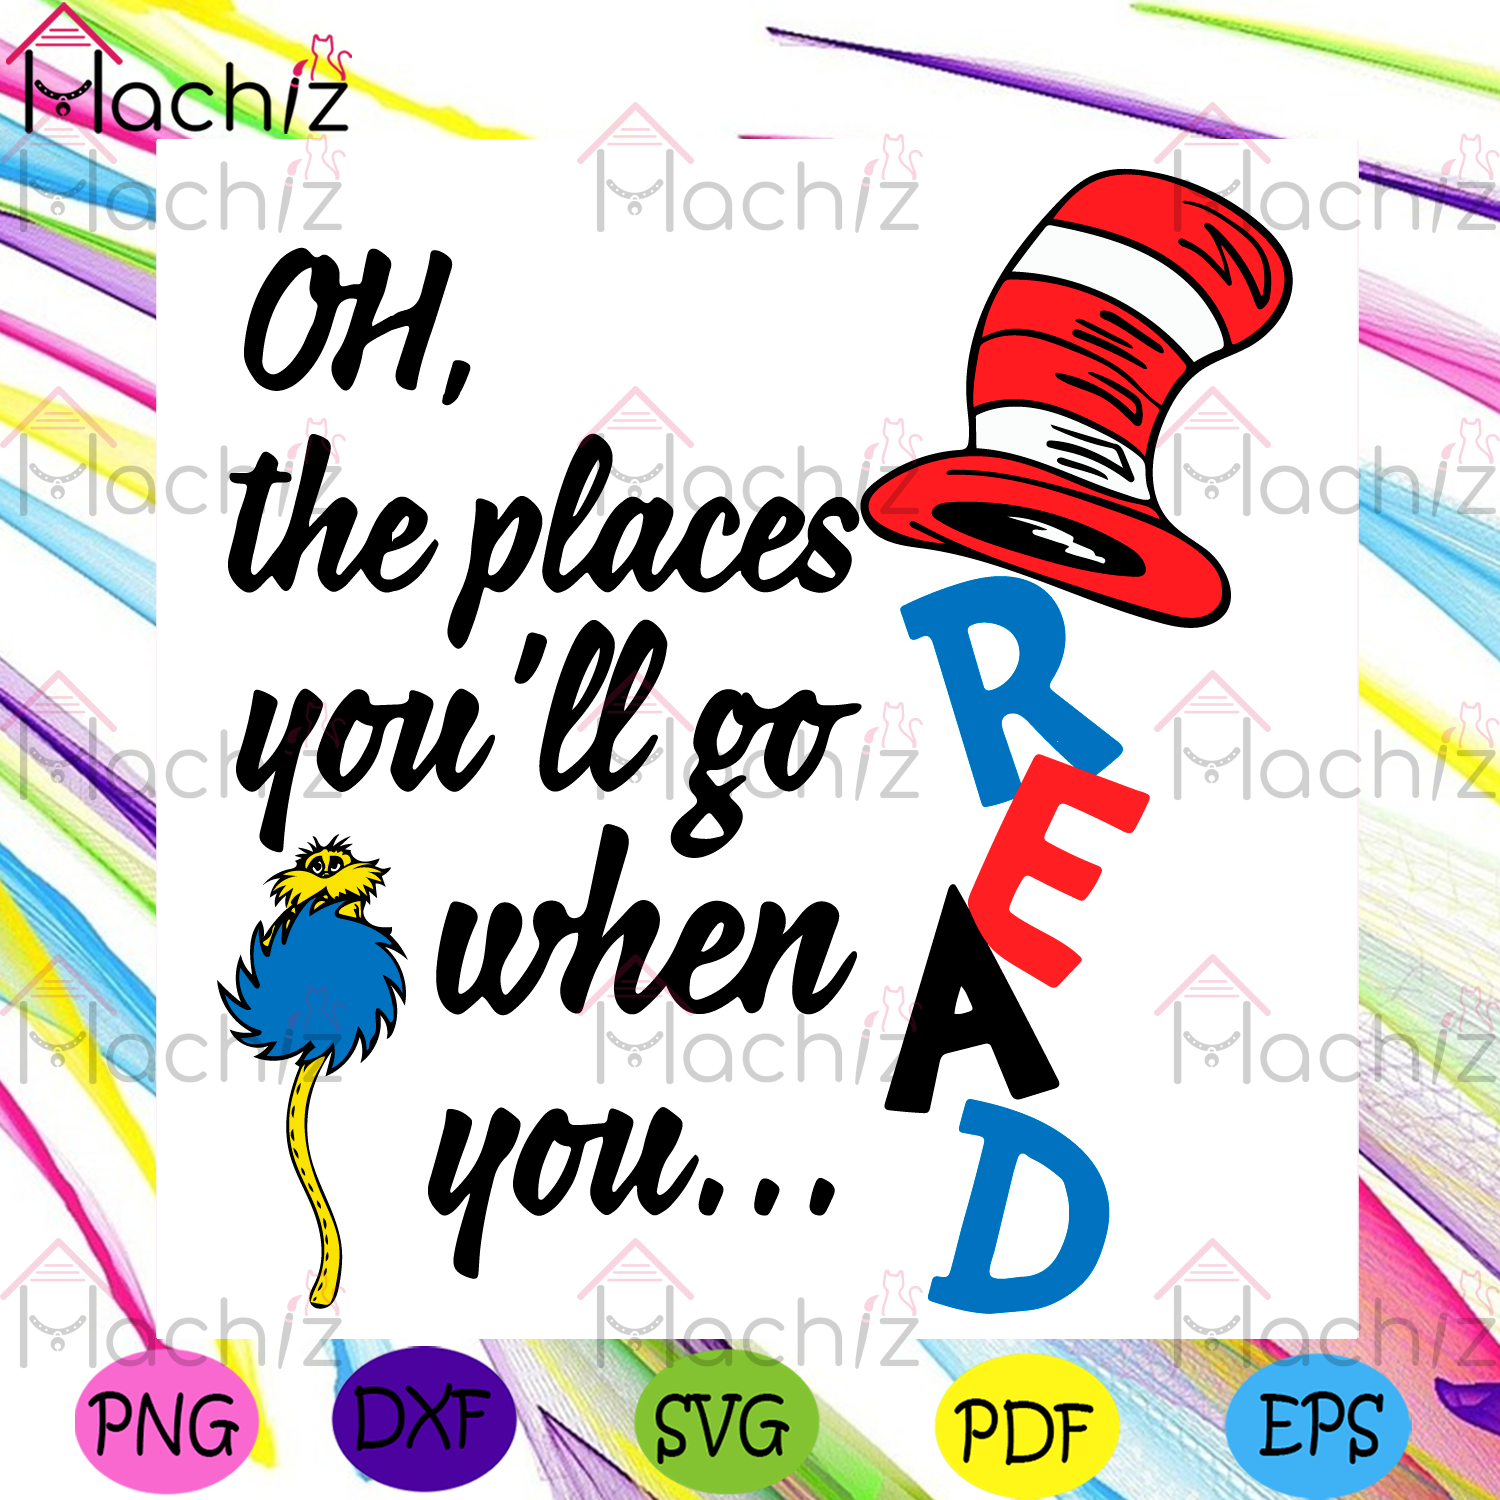 Dr Seuss Oh The Places You Will Go When You Read Svg, Dr Seuss Svg, The Cat In The Hat Svg, Reading Book Svg, The Cat In The Hat Lovers Svg, The Cat In The Hat Gifts Svg, Kid Book Svg, Dr Seuss Book Svg, Dr Seuss Lovers Svg